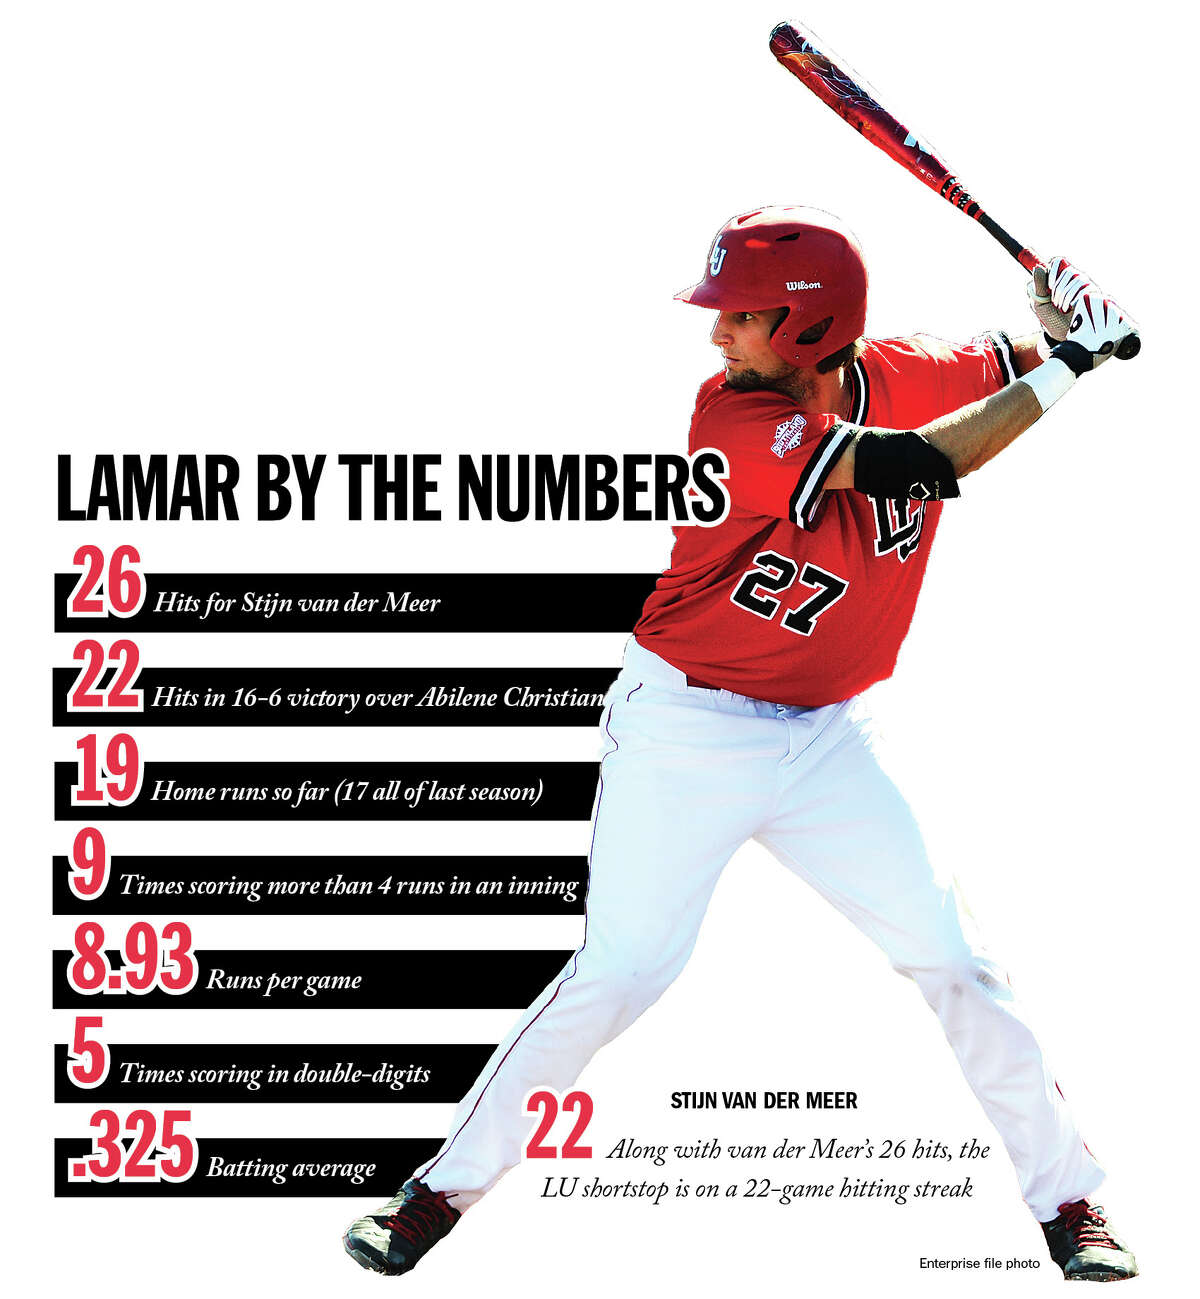 A closer look at how Lamar baseball's hitters have contributed to the team's 15-game winning streak.